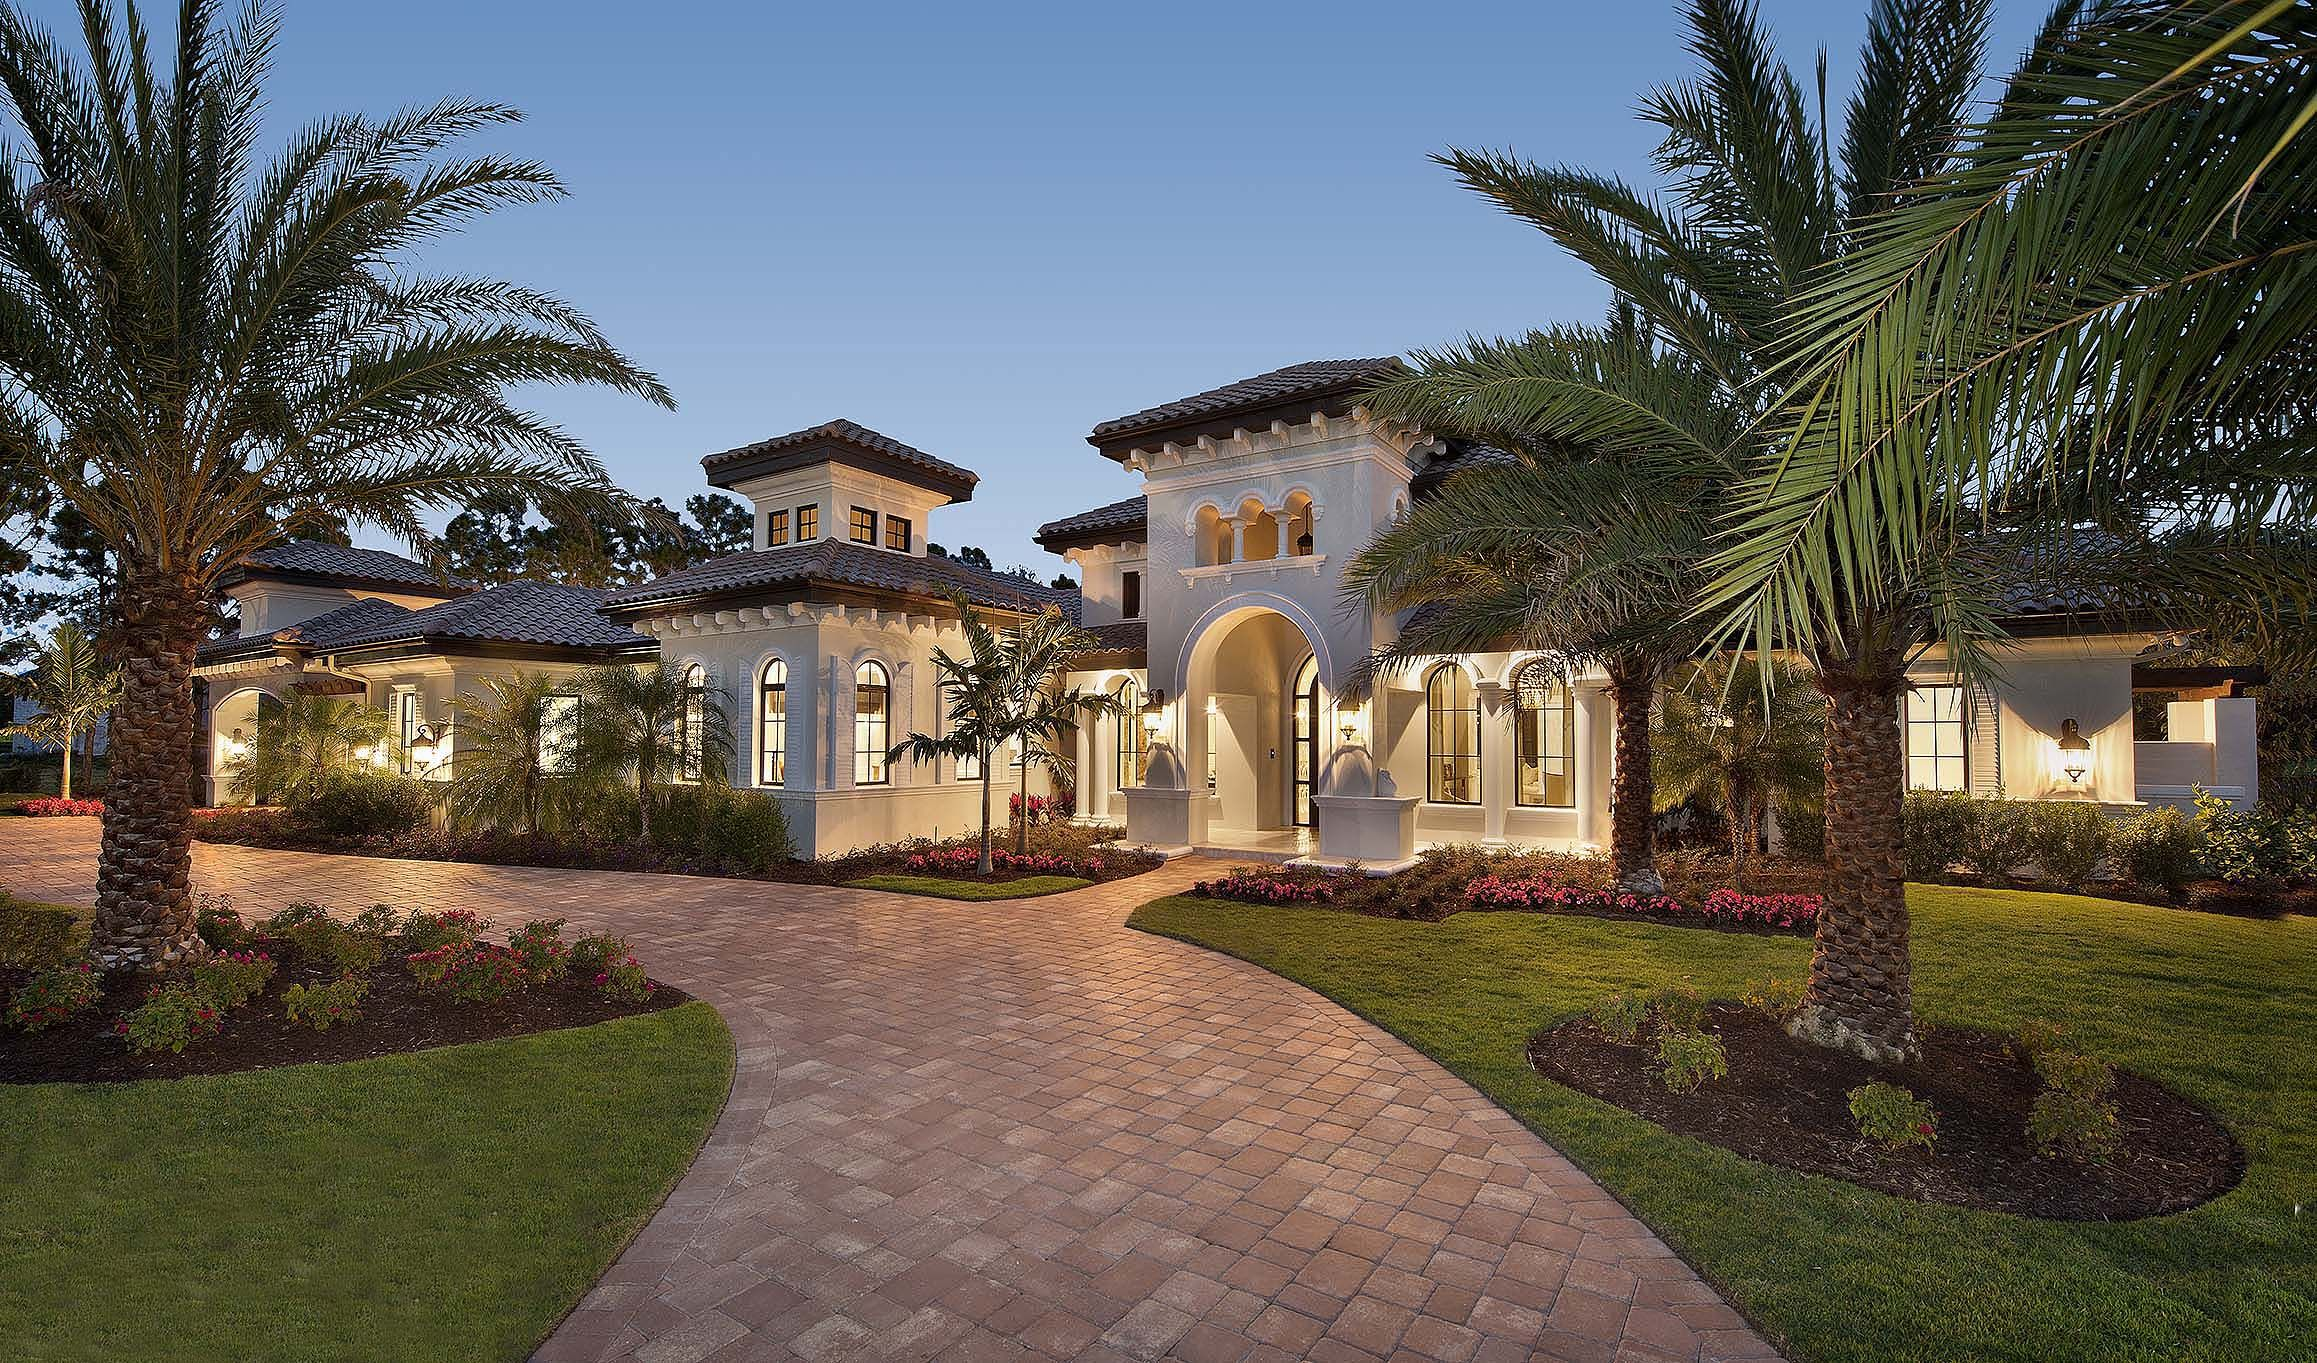 Luxury villa with spanish influences 66351we florida for Modern luxury villa design